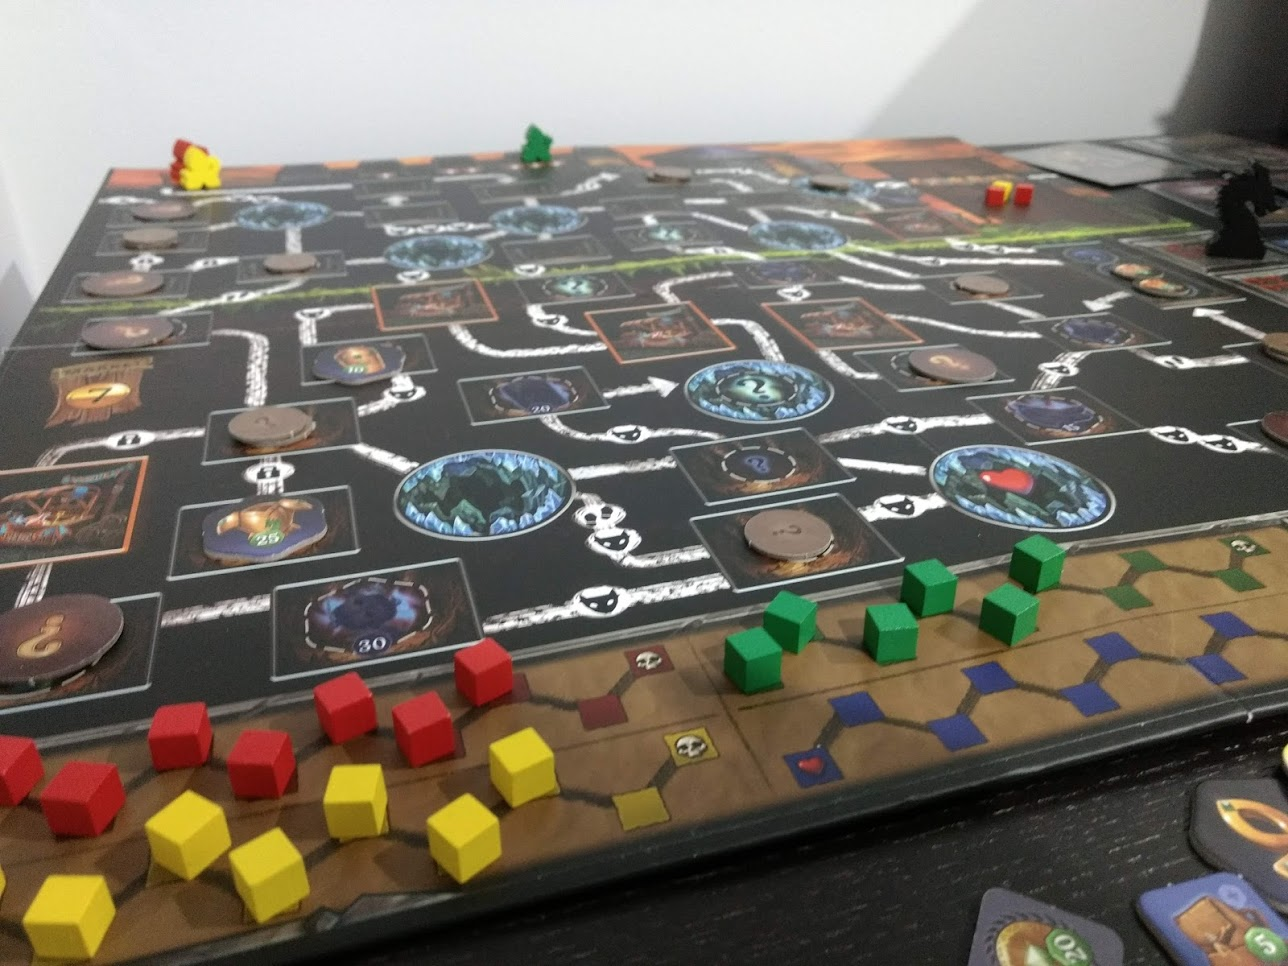 Clank's board after a game, yellow won